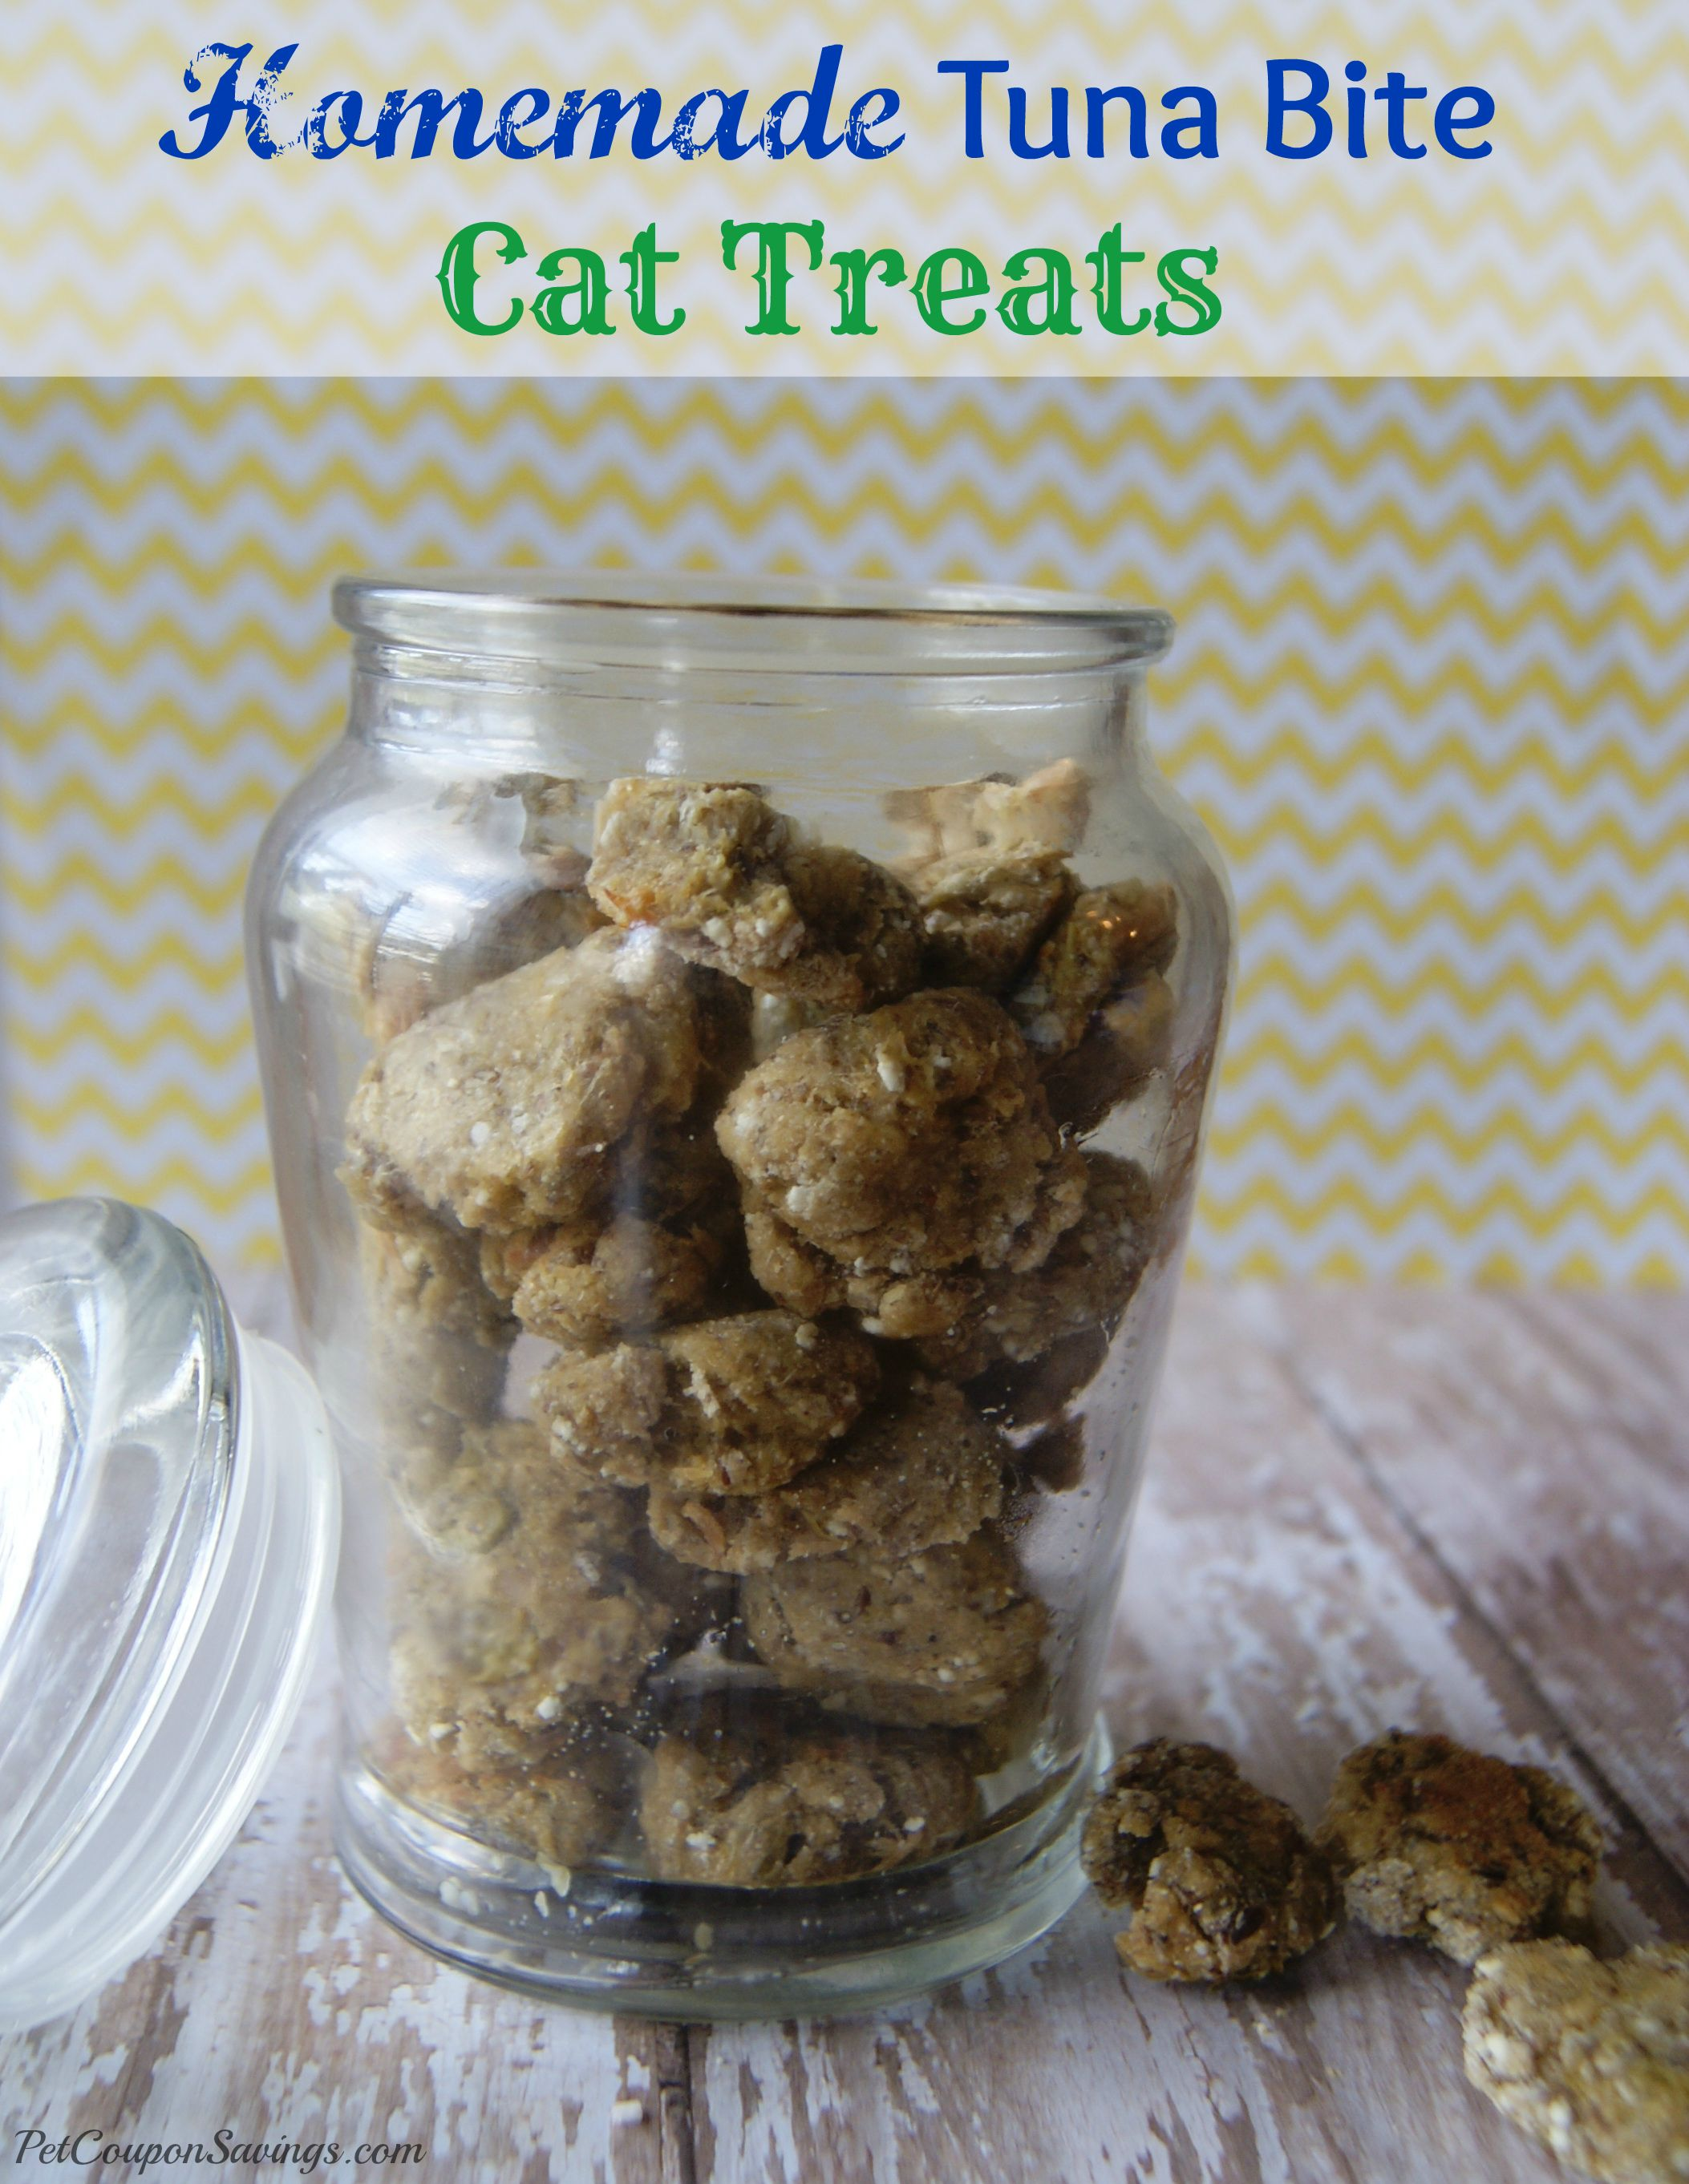 Homemade Tuna Cat Treats Recipe Cat treats homemade